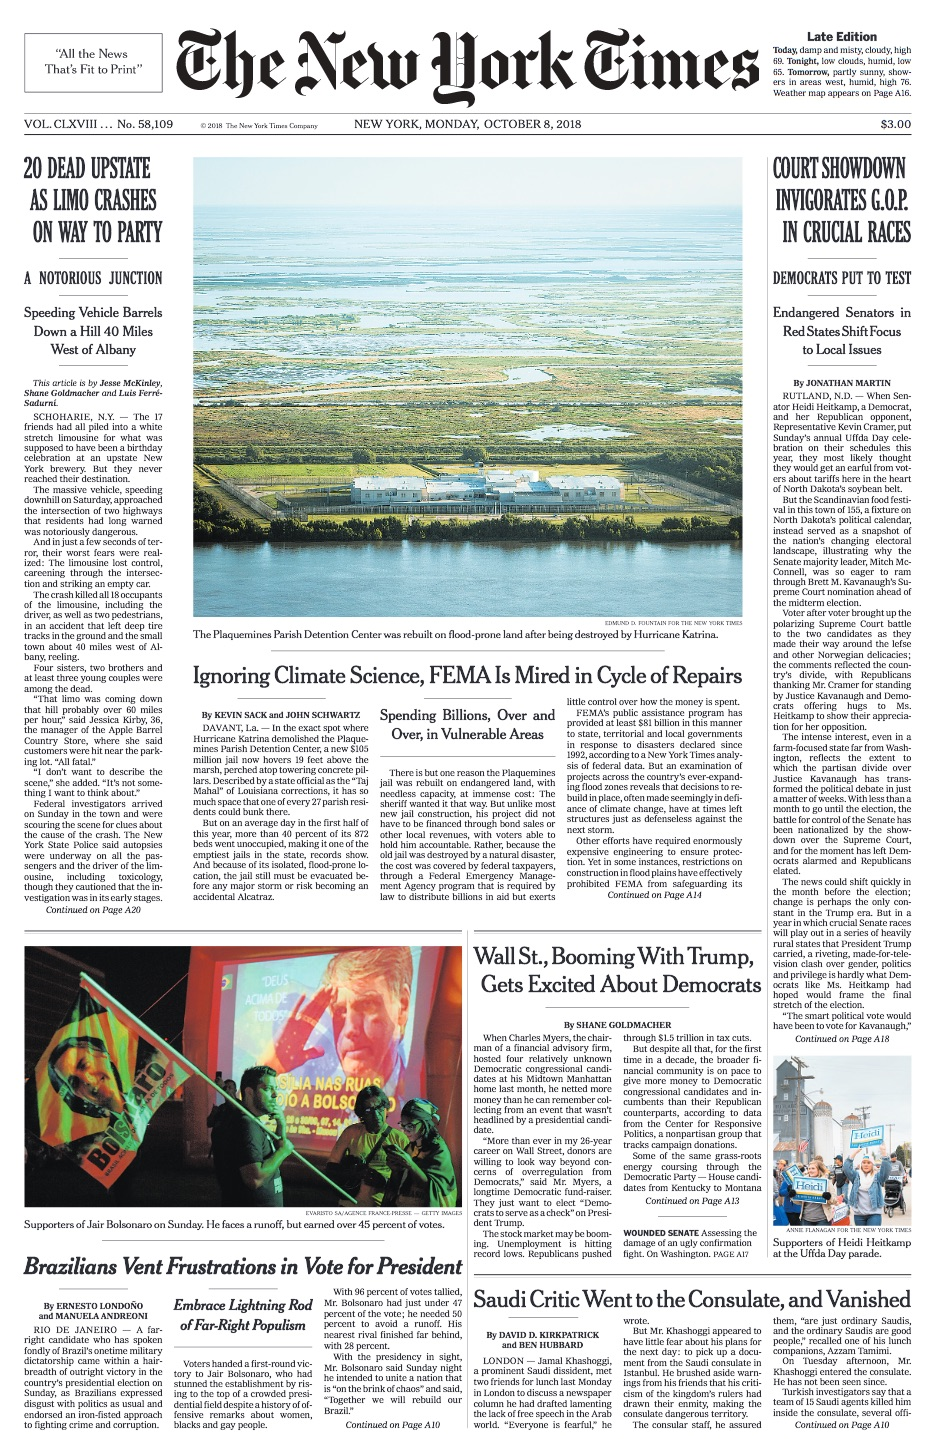 NYT_FrontPage_100818.jpg